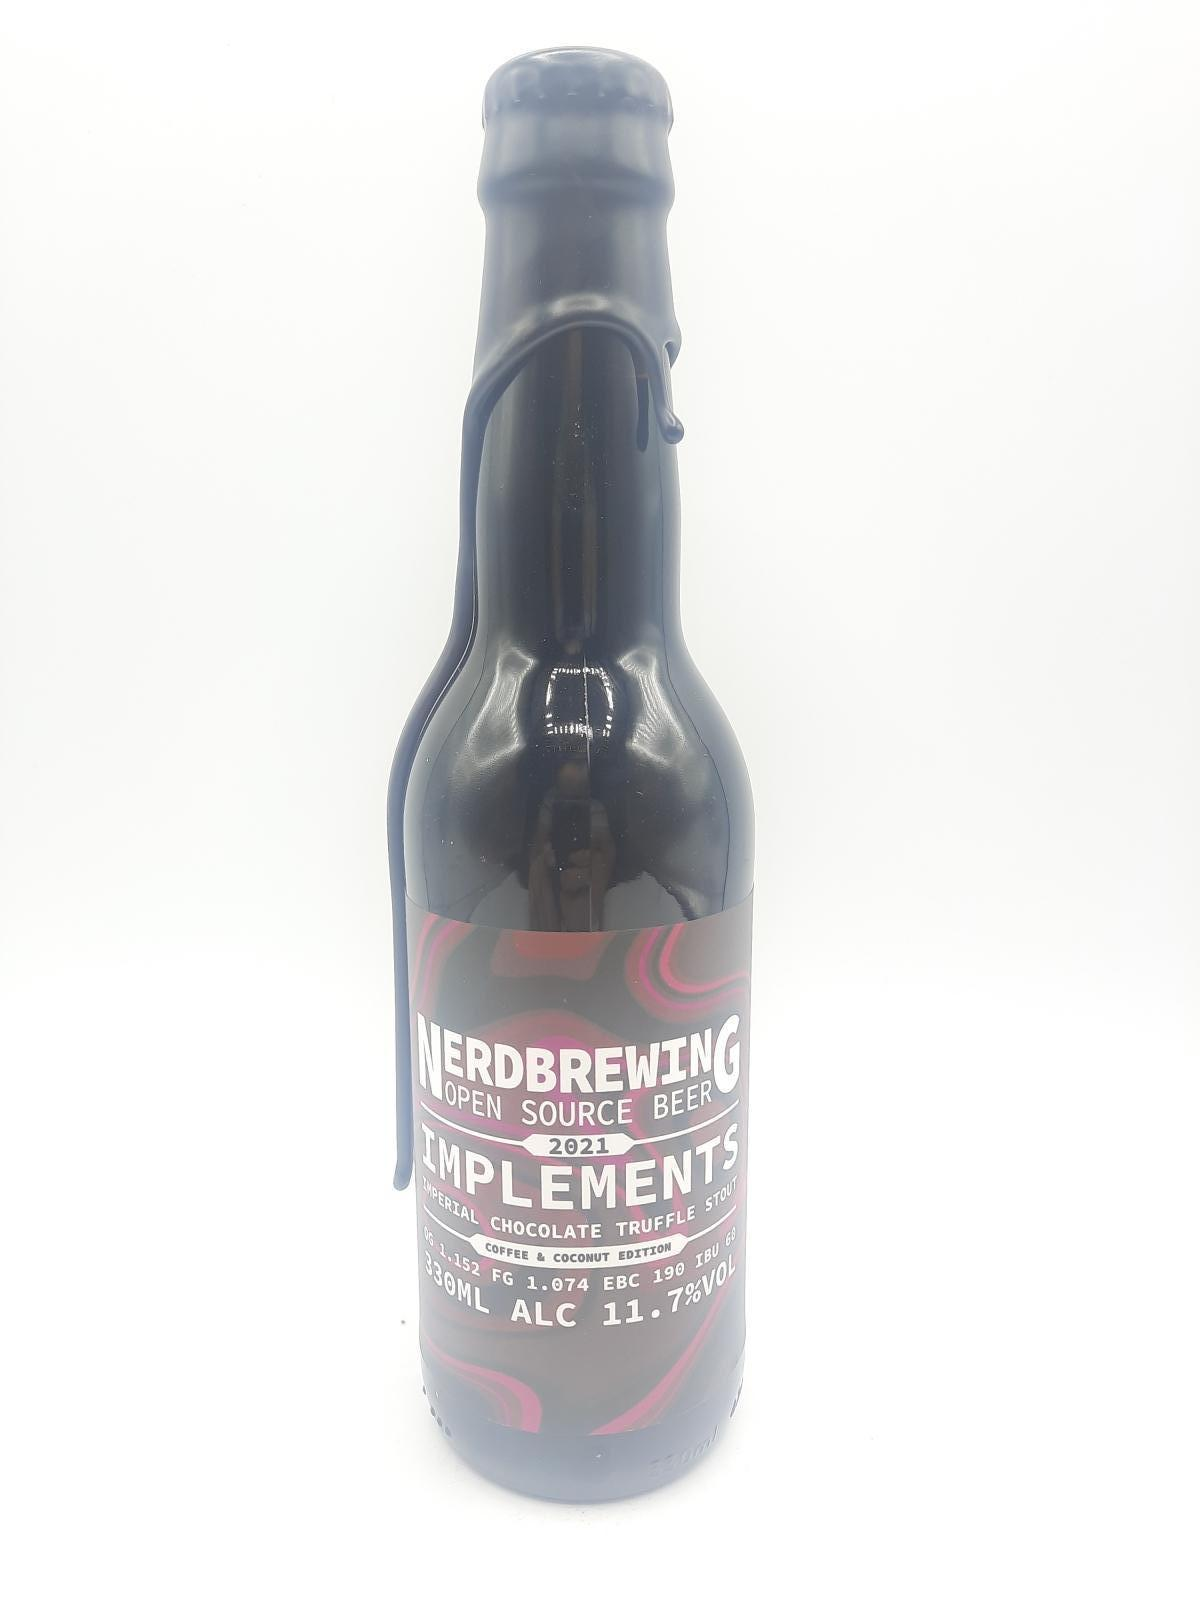 Img Implements Imperial chocolate truffle stout